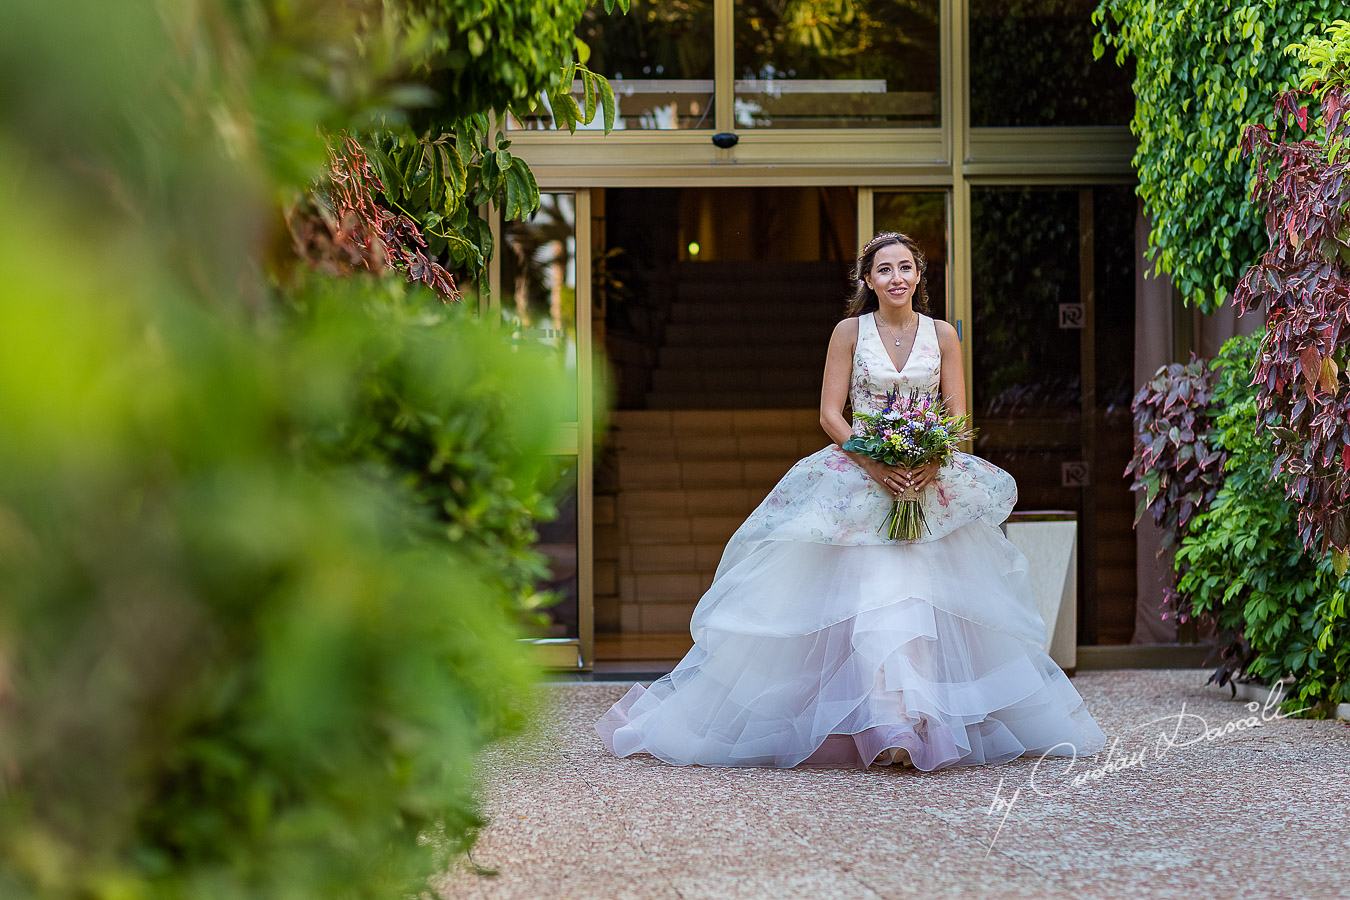 The bride coming down the isle photographed during the ceremony, as part of an Exclusive Wedding photography at Grand Resort Limassol, captured by Cyprus Wedding Photographer Cristian Dascalu.